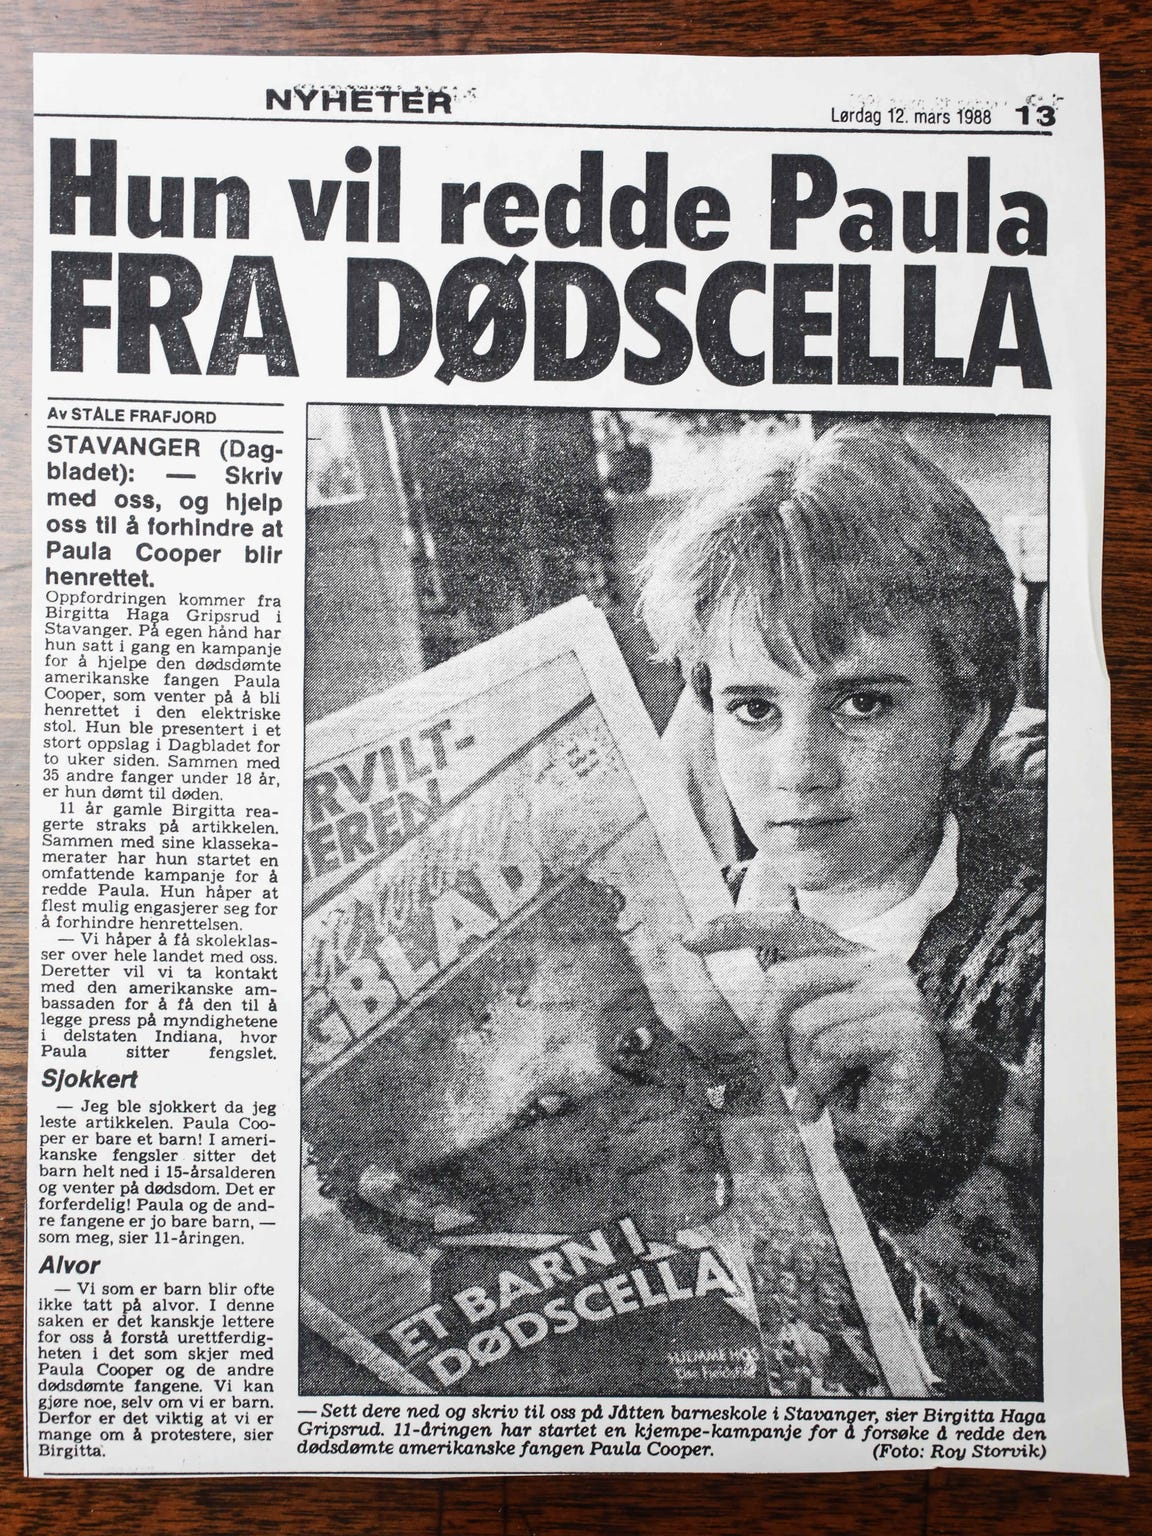 A photo copy of a scandinavian newspaper headline shows